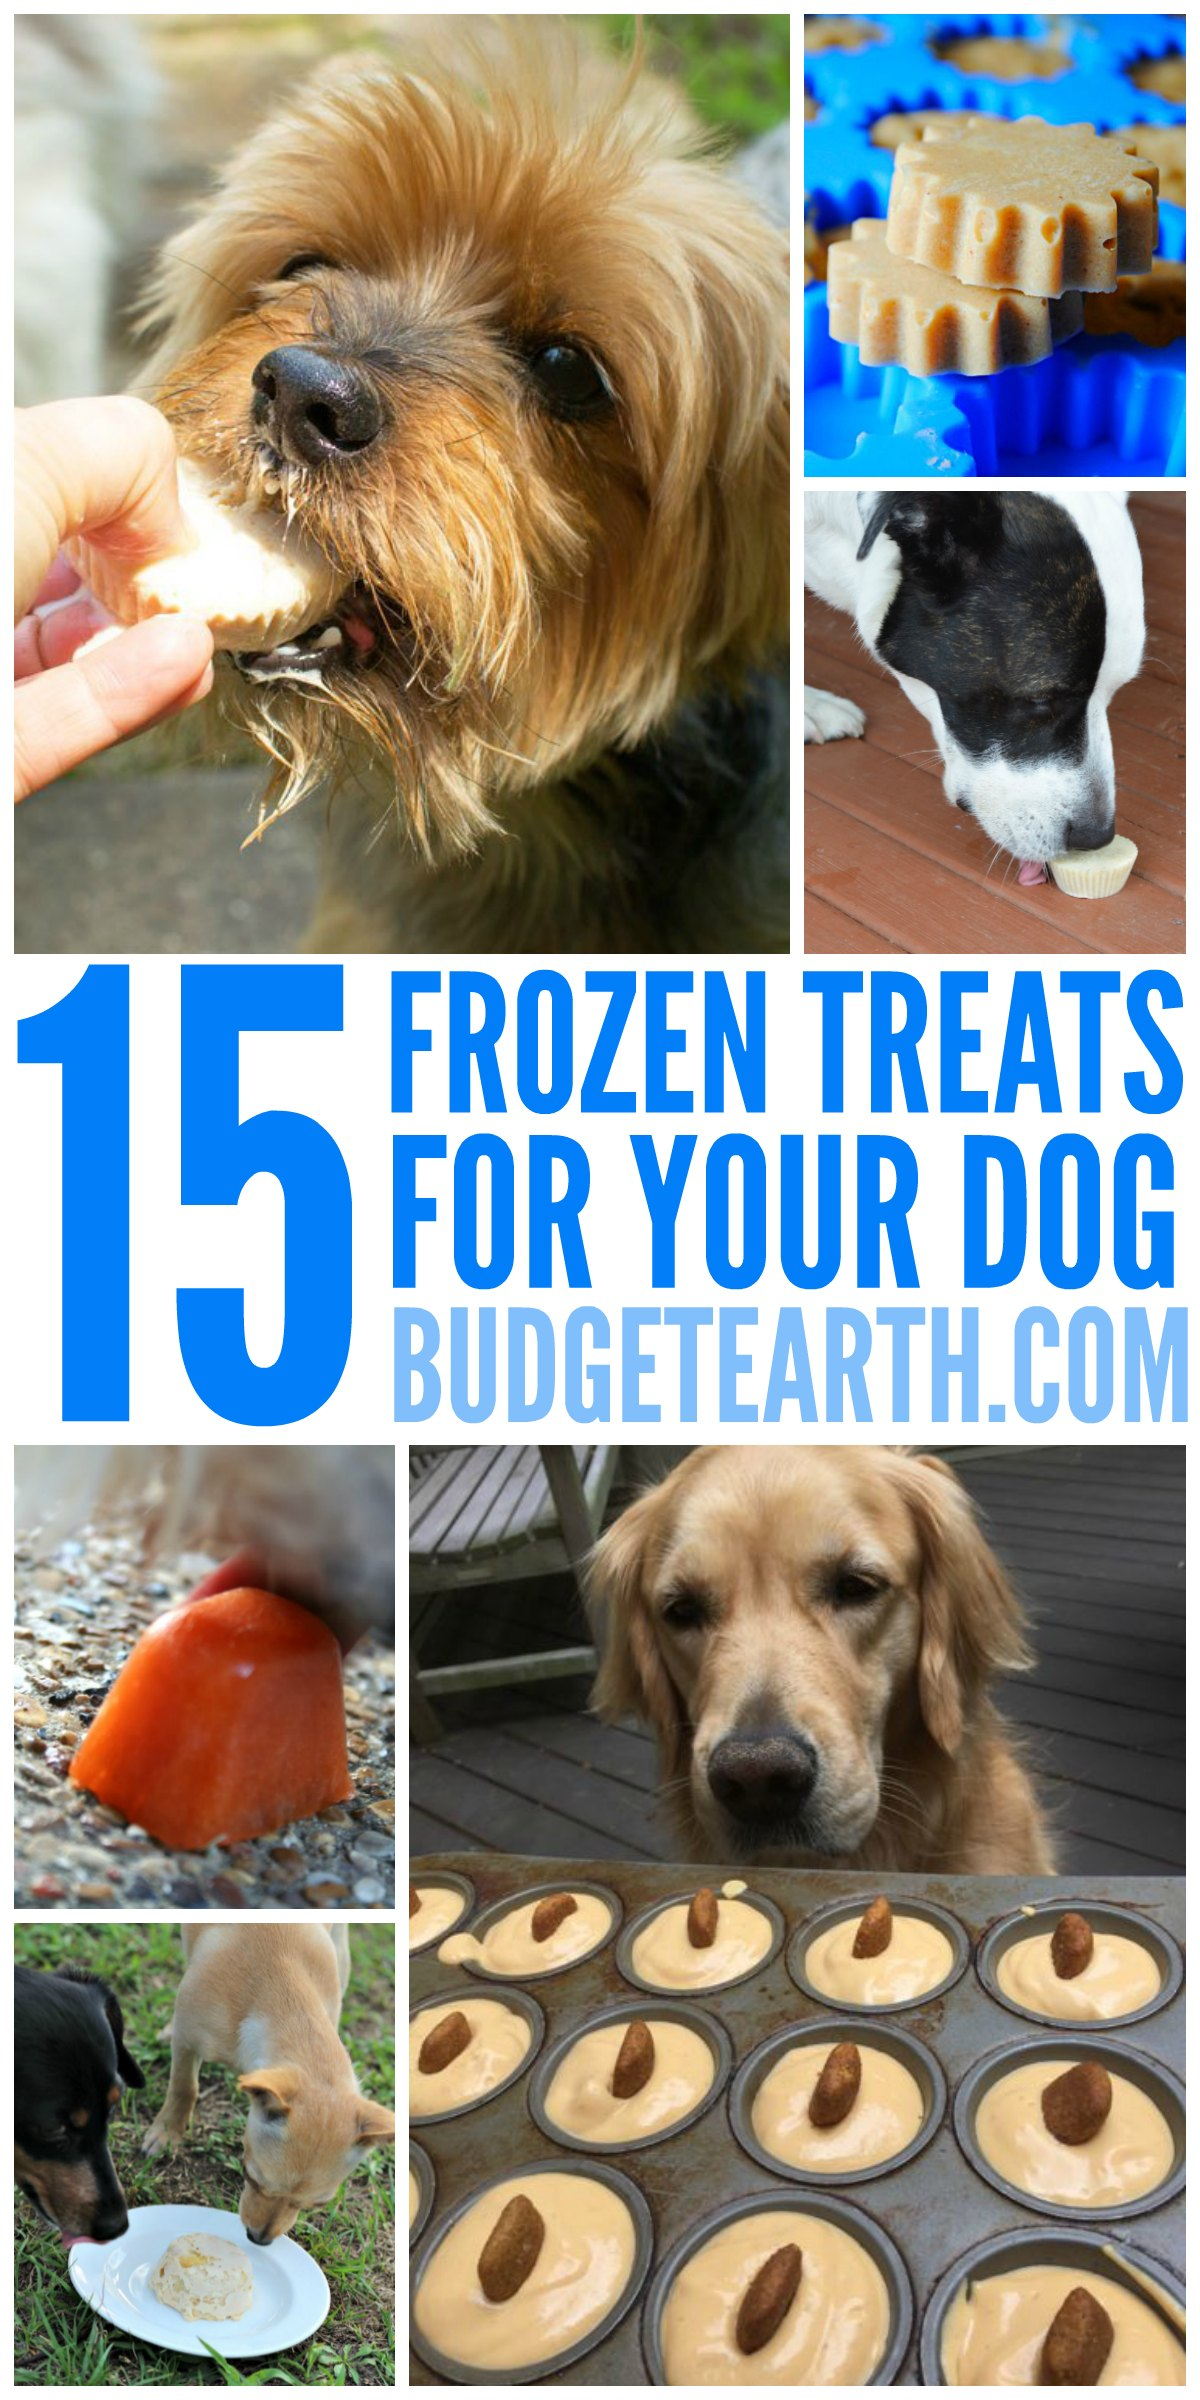 15 Frozen Treats for Your Dog